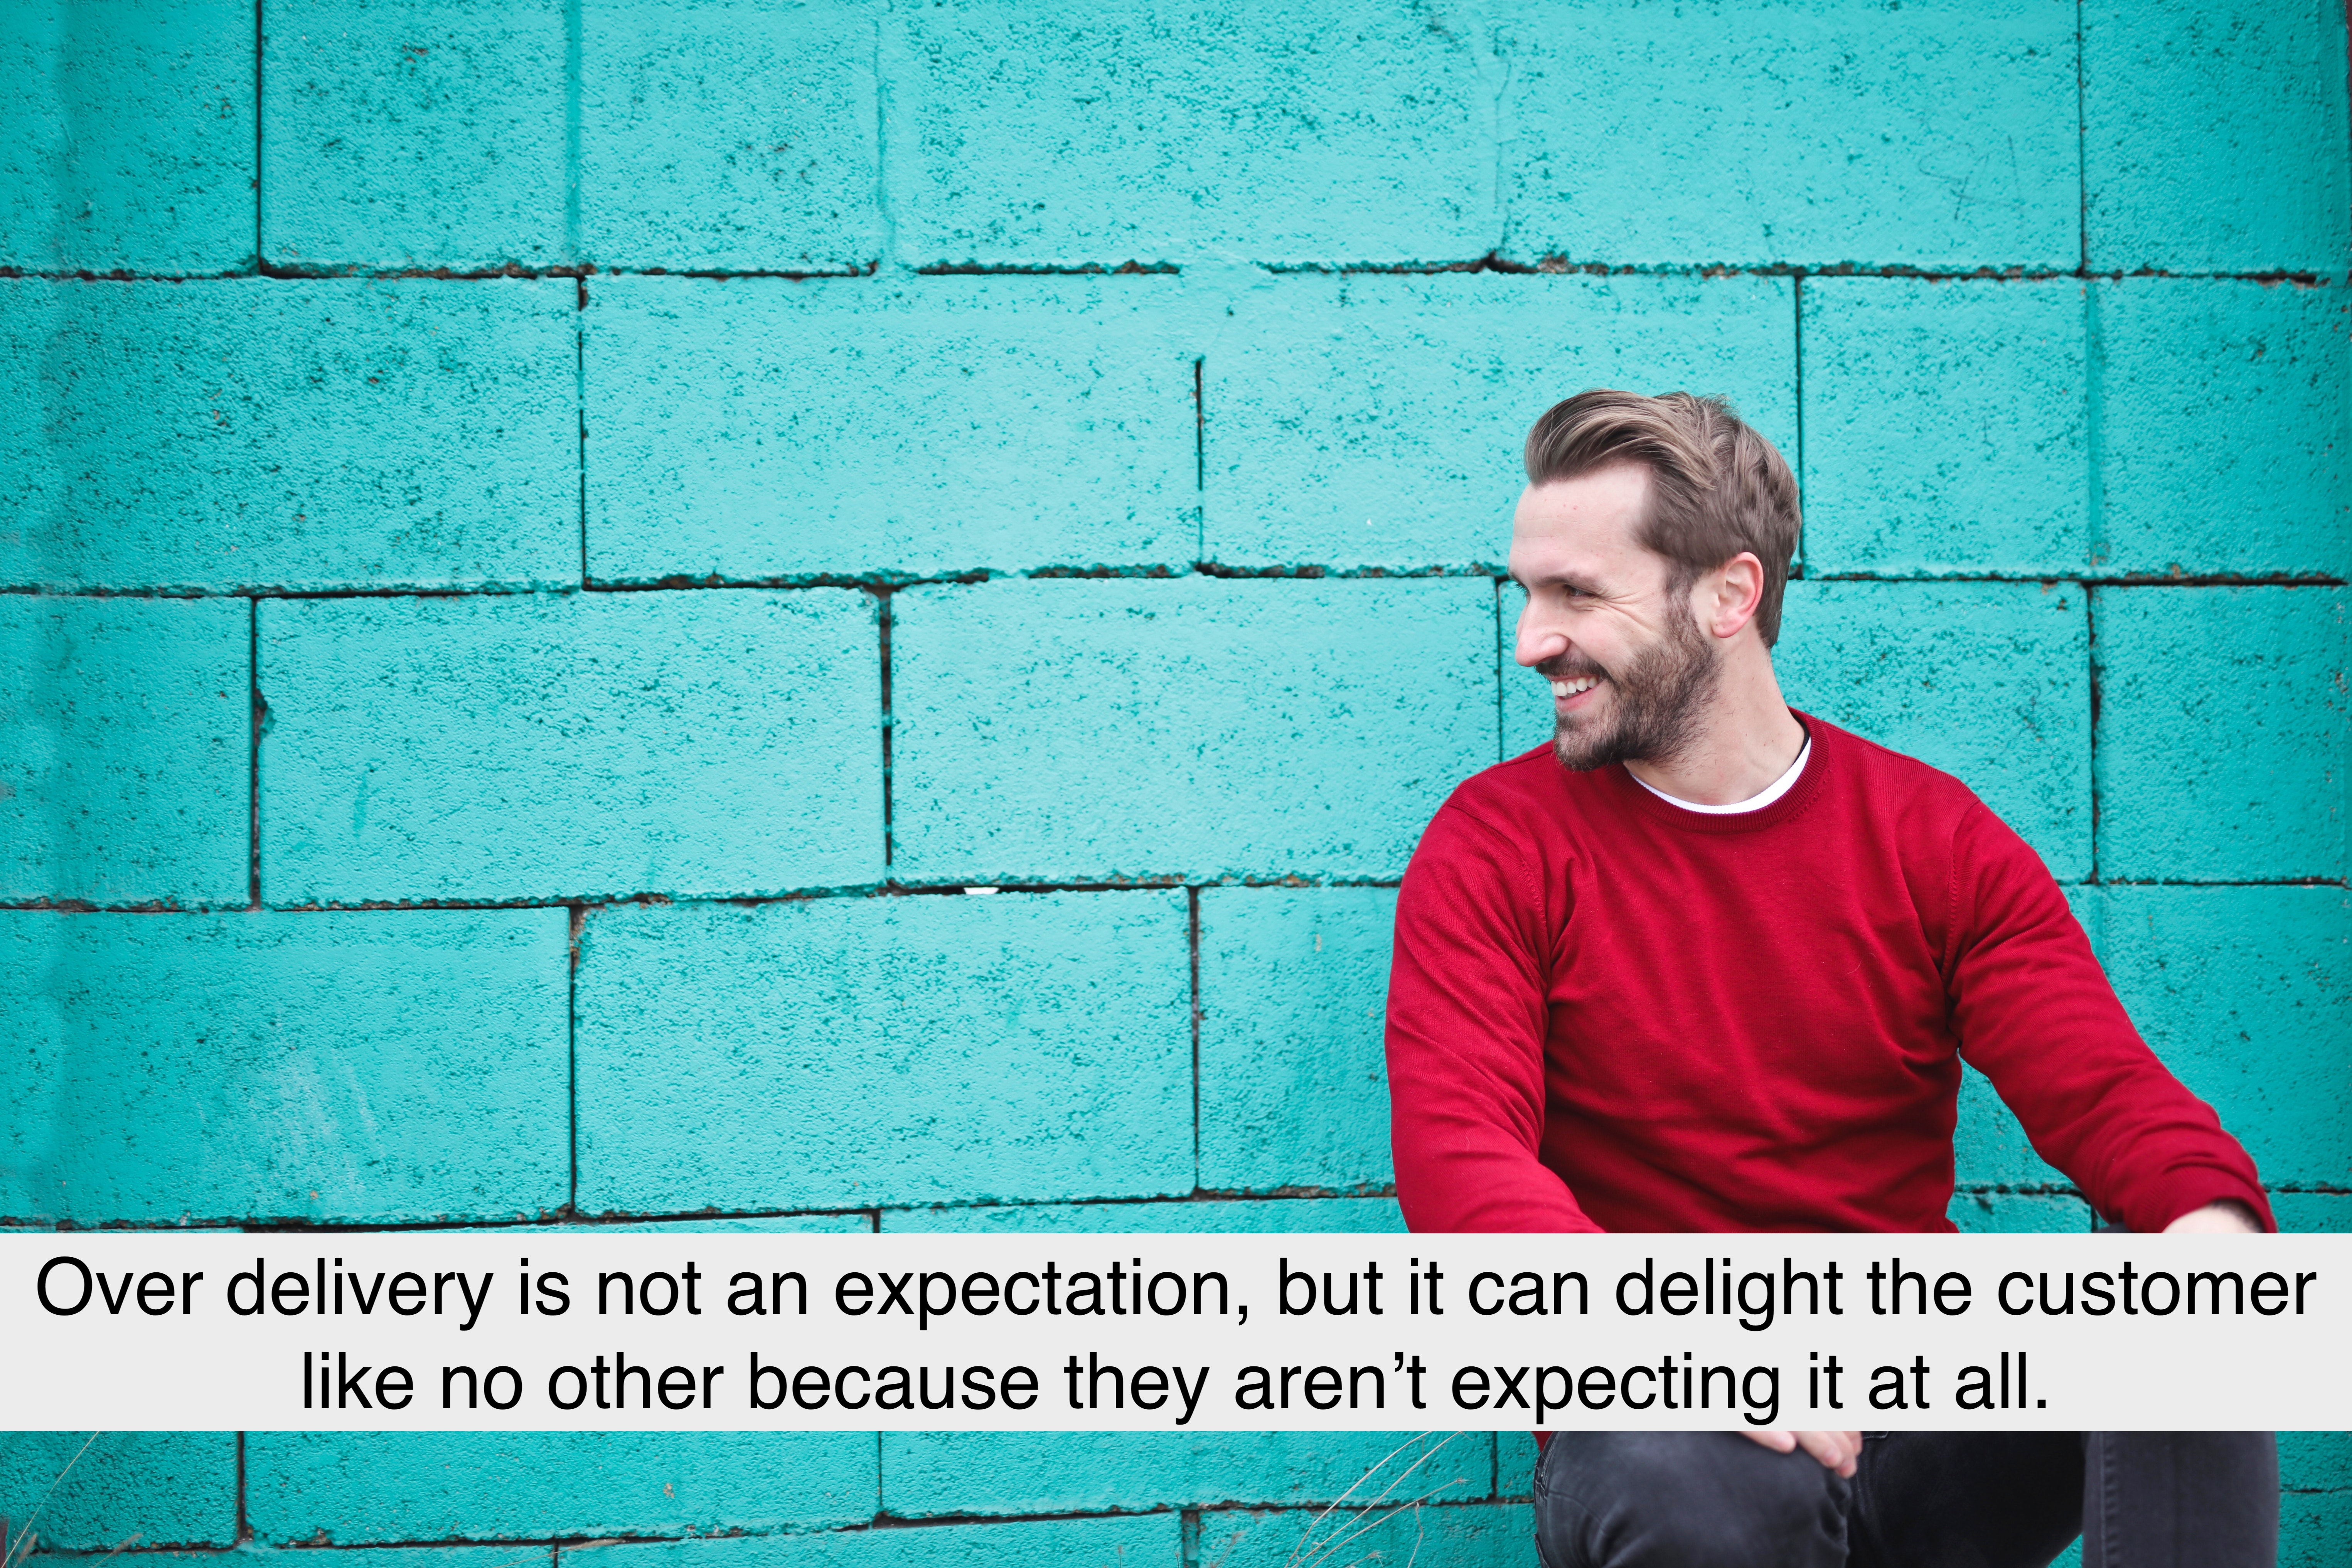 Over delivery is not an expectation, but it can delight the customer like no other because they aren't expecting it at all.